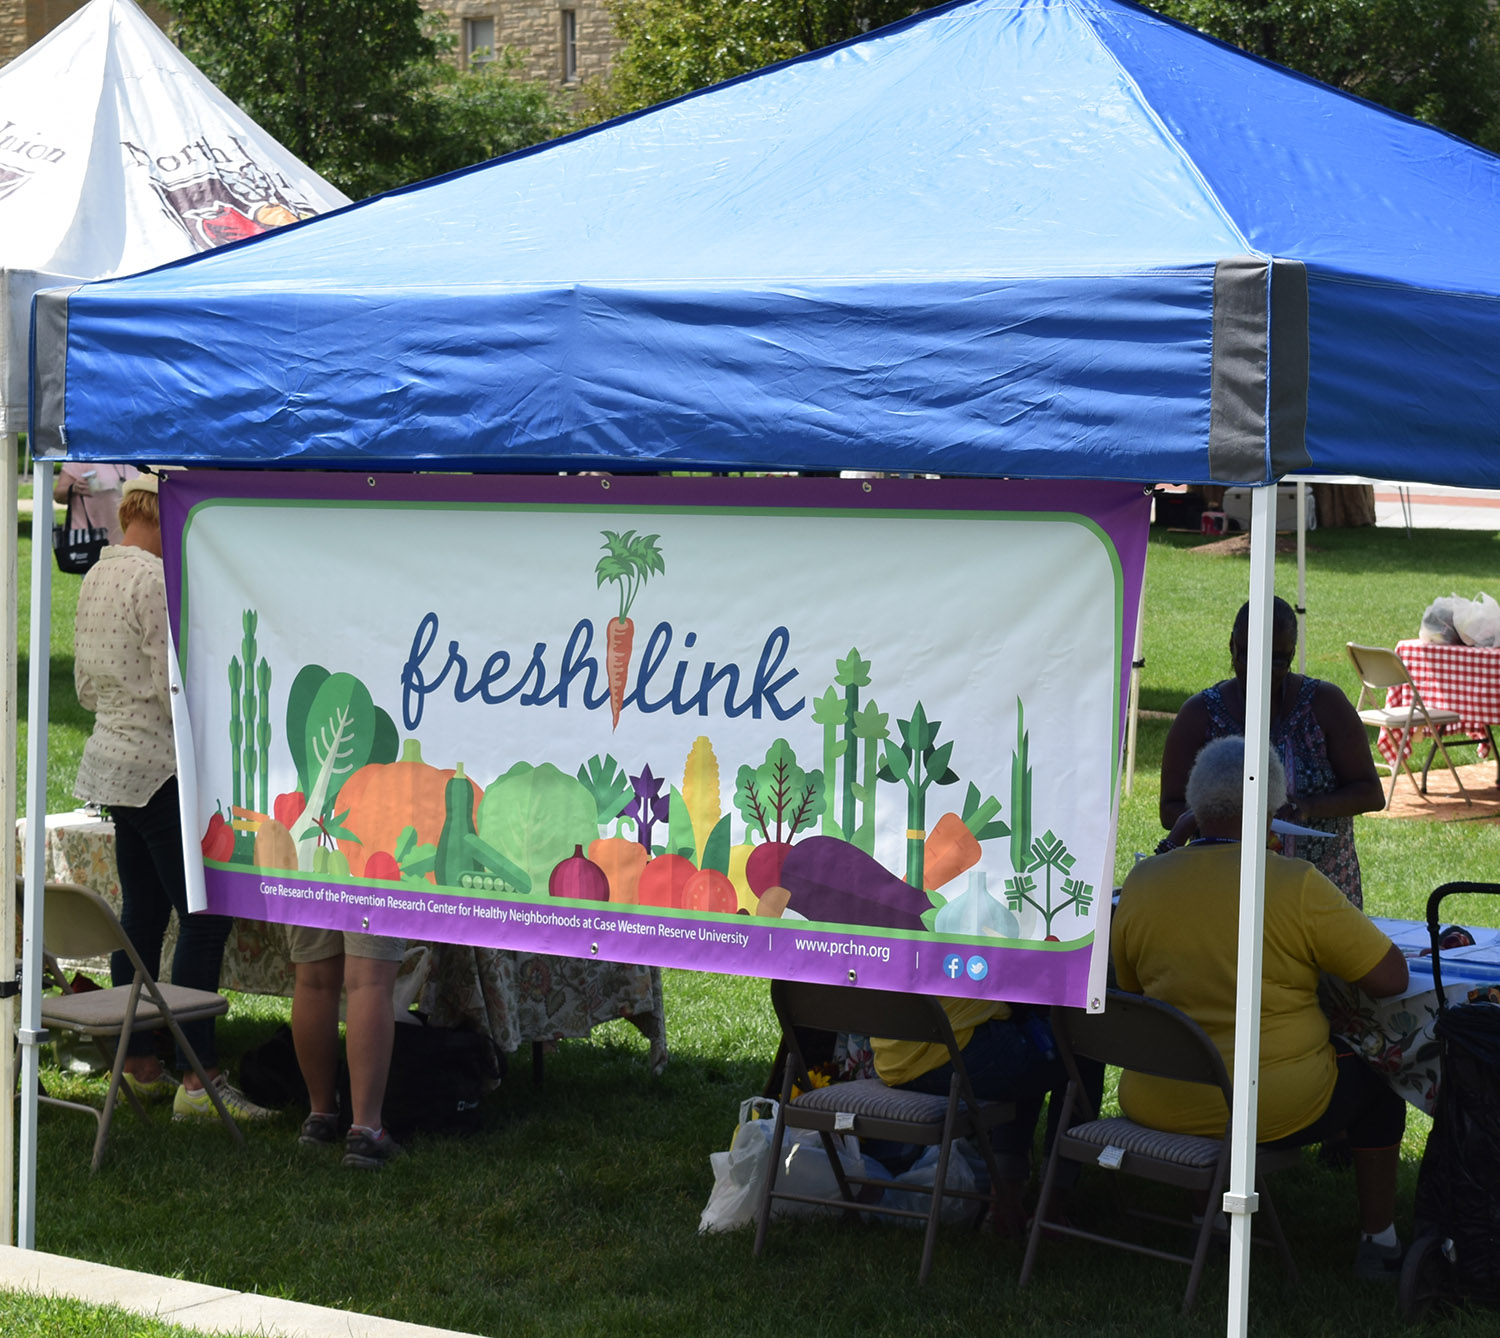 FreshLink booth at a farrmers' market